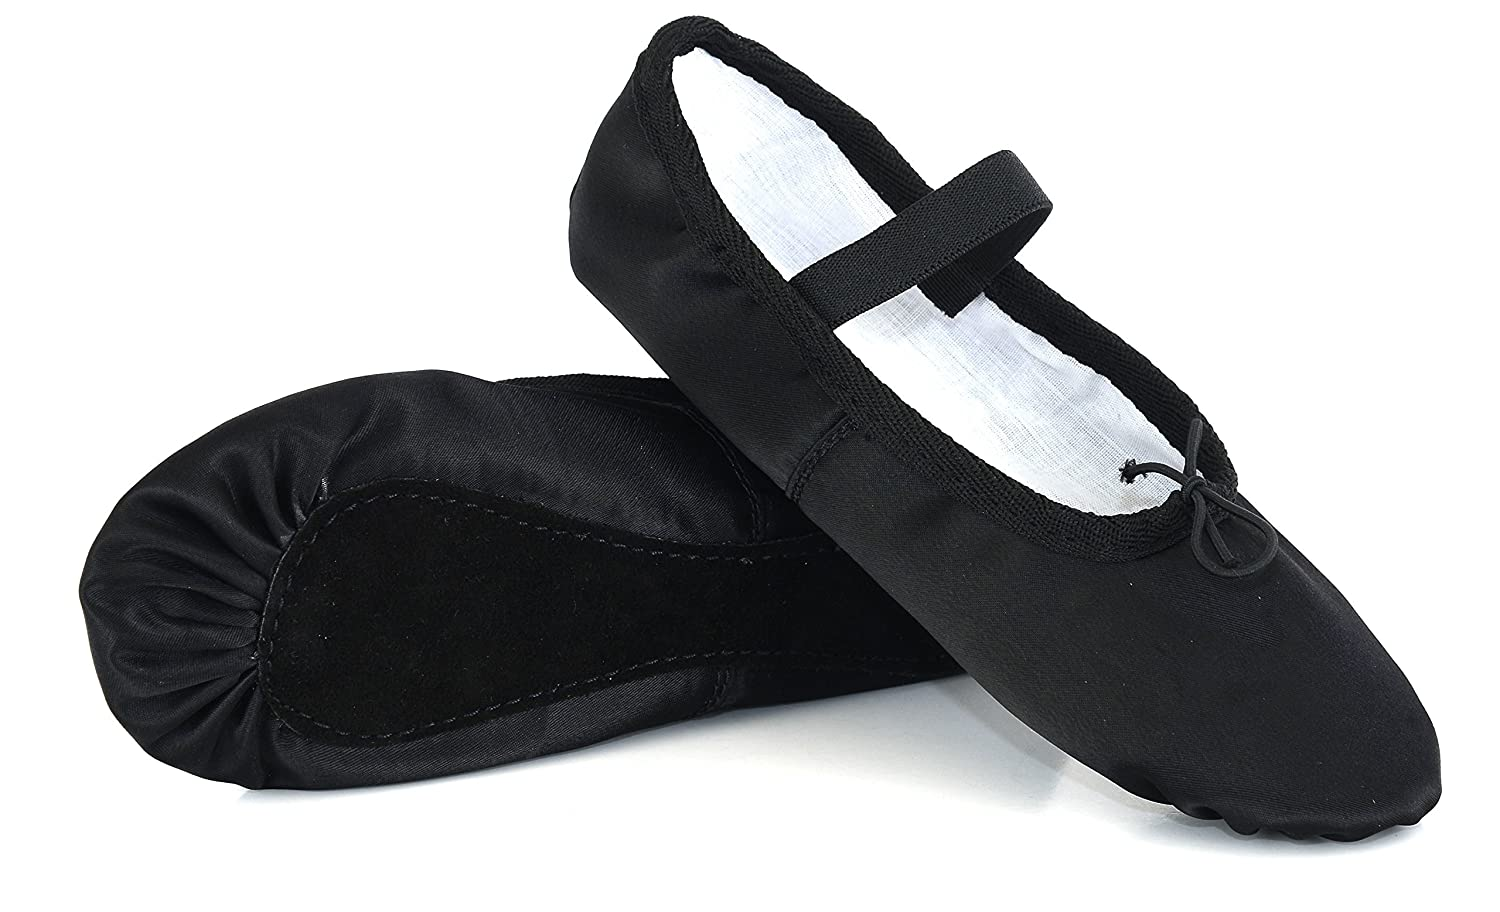 Black Ballet Satin Dance Shoes, Silky Finish, Full Sole Satin Shoes with Elastics